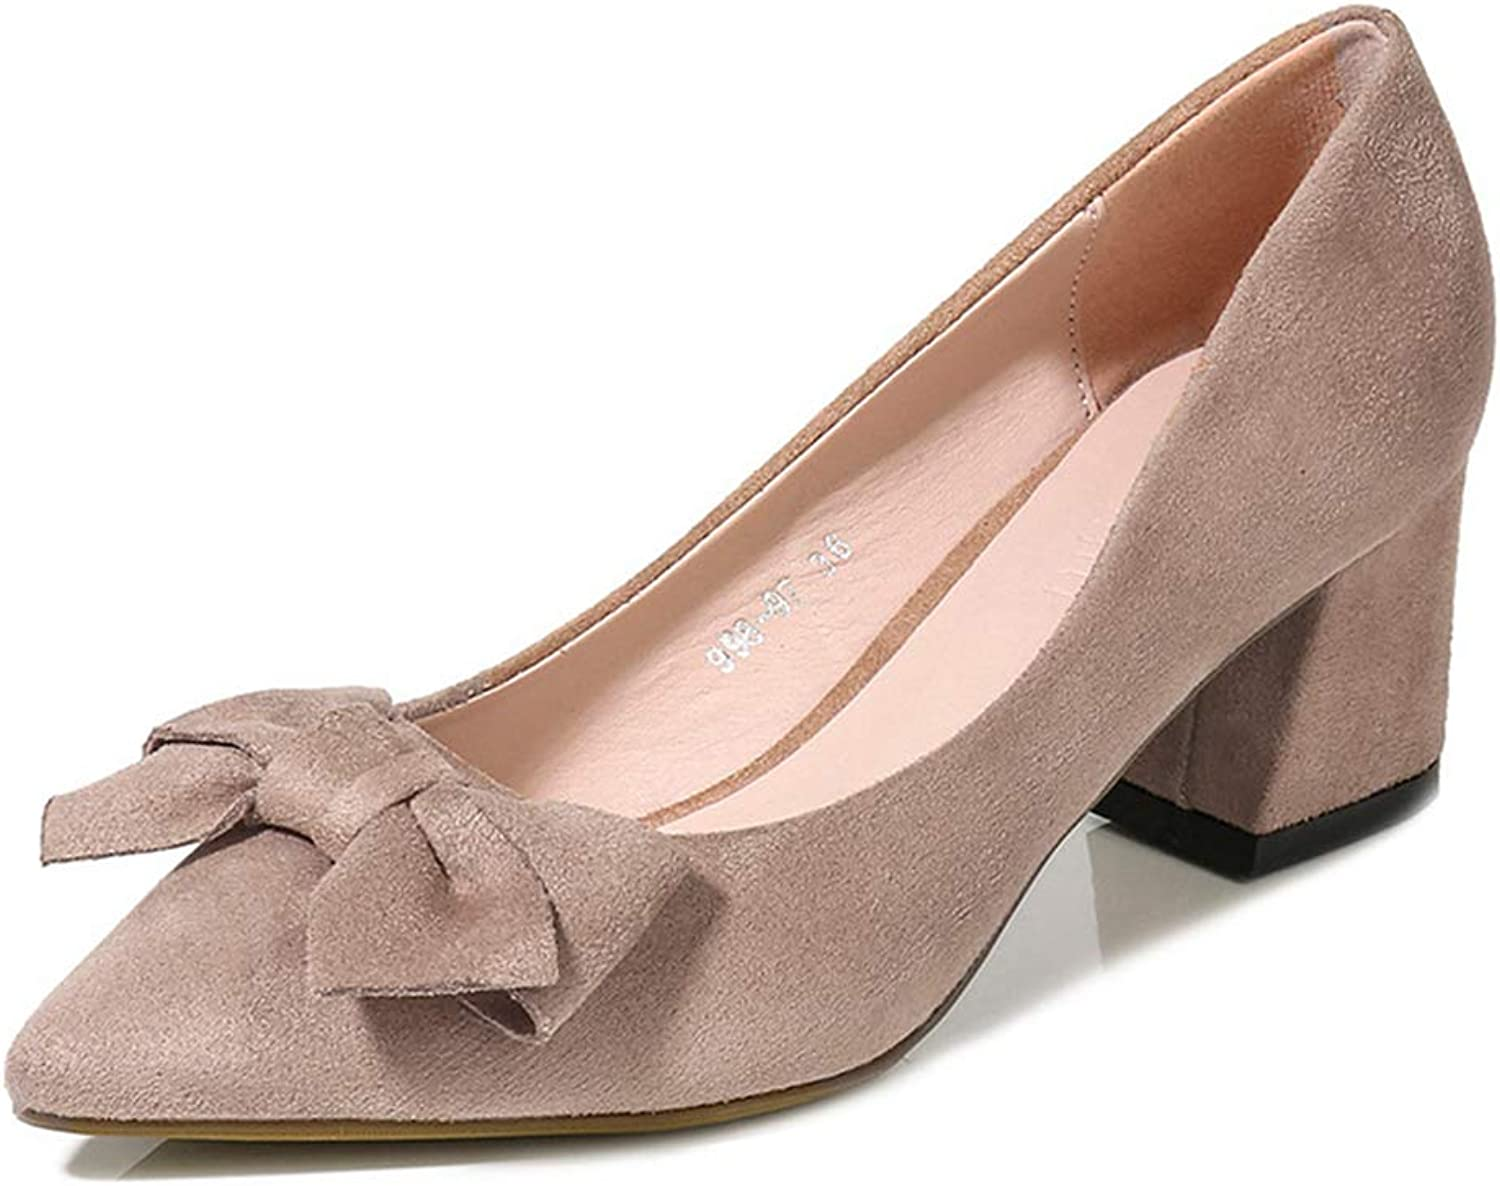 Sam Carle Womens Pumps,Chunky Heel Classic Sweet Butterfly-Knot Shallow Mouth shoes